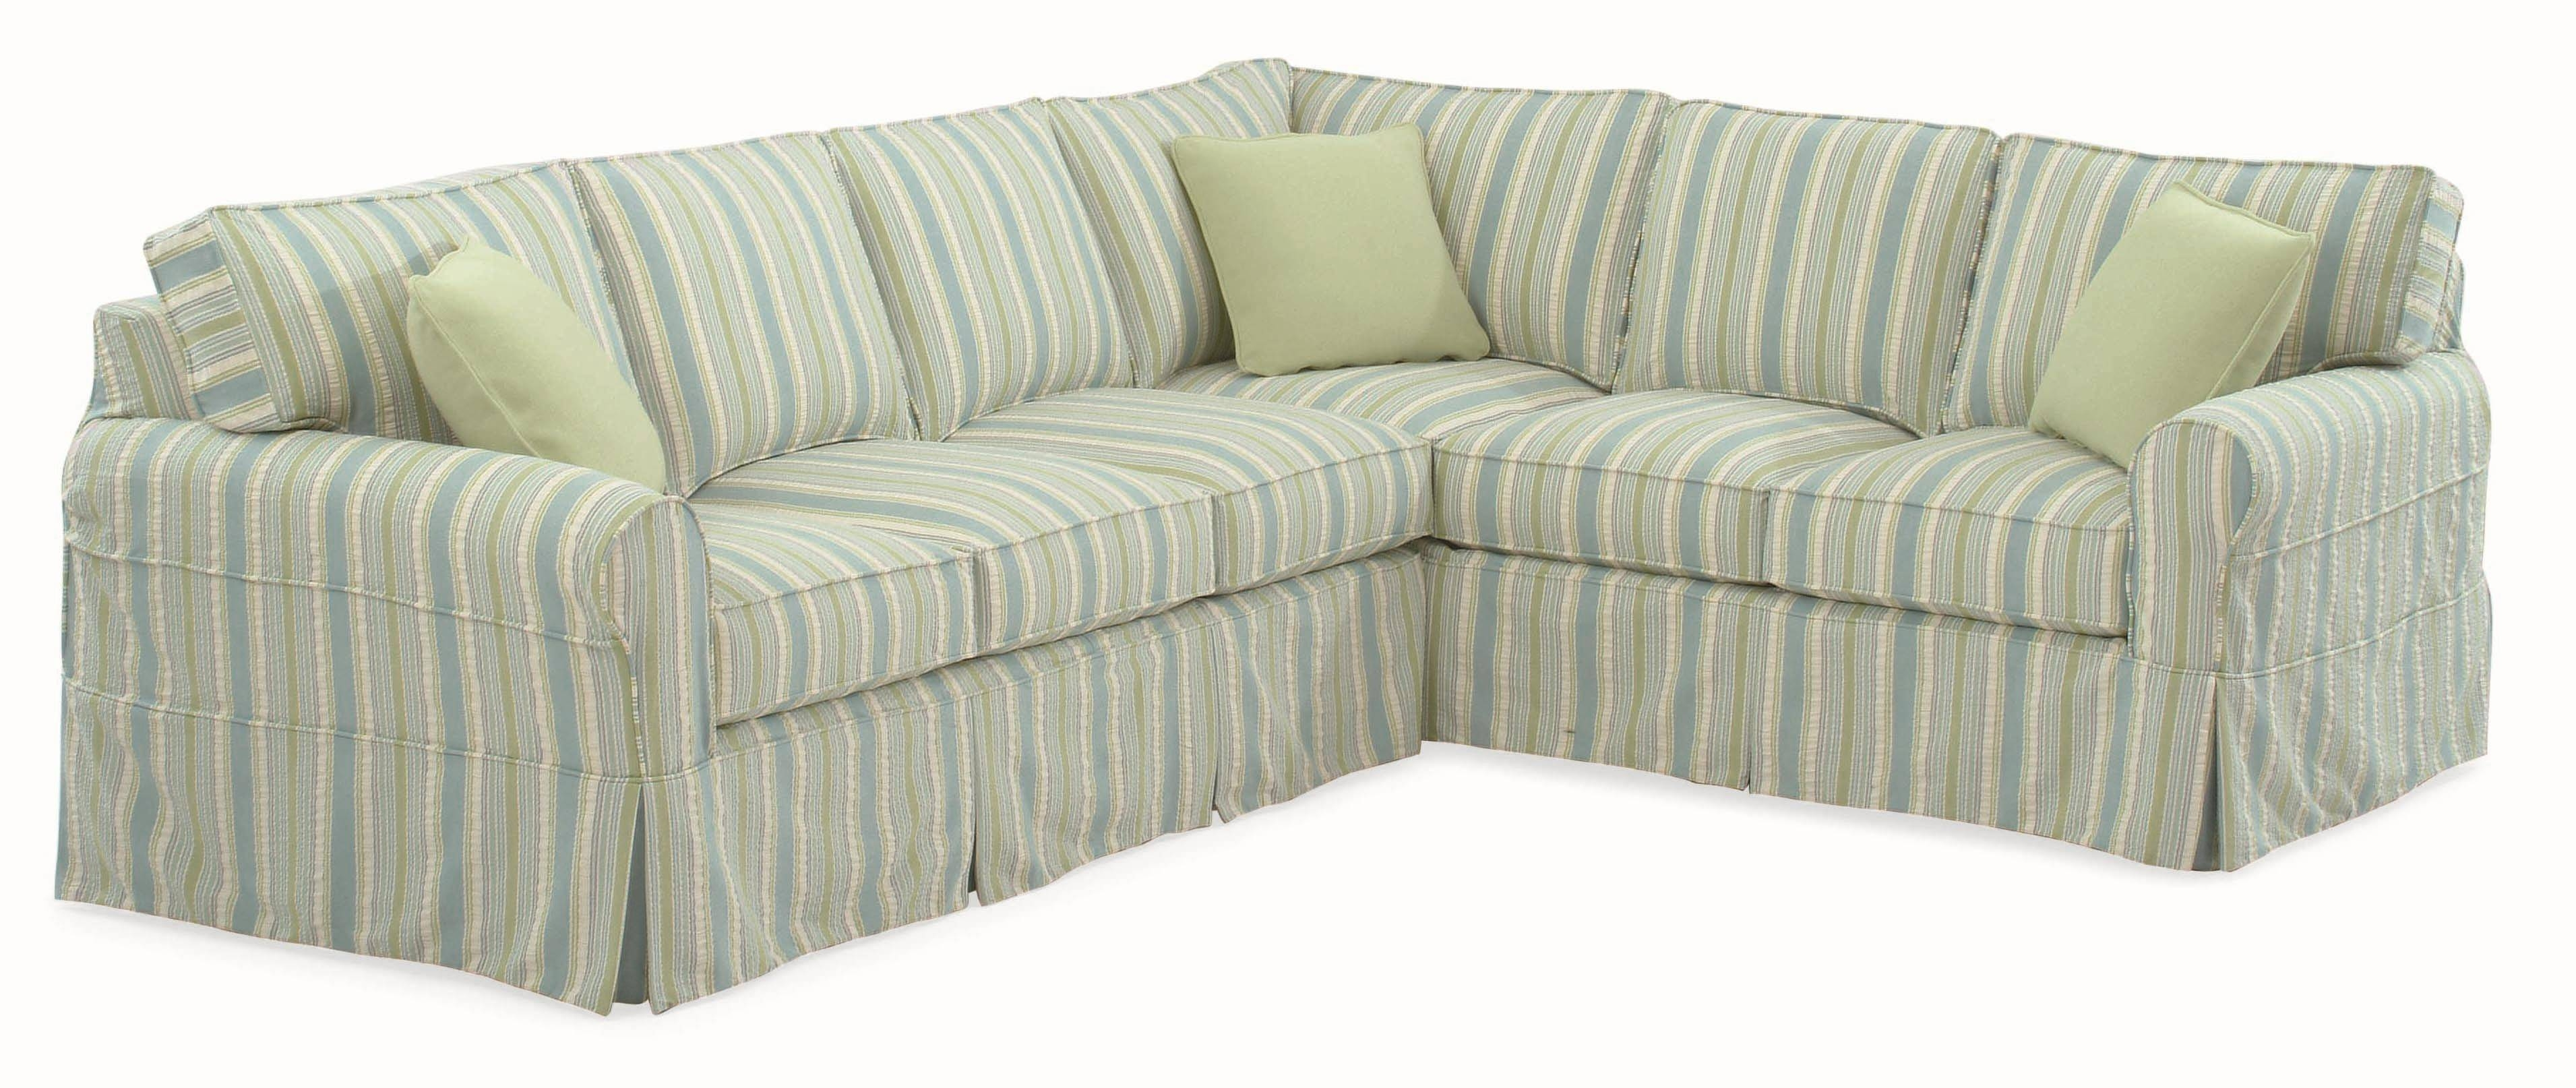 Braxton Culler 728 Casual Sectional Sofa With Rolled Arms And with regard to Braxton Sofa (Image 3 of 30)